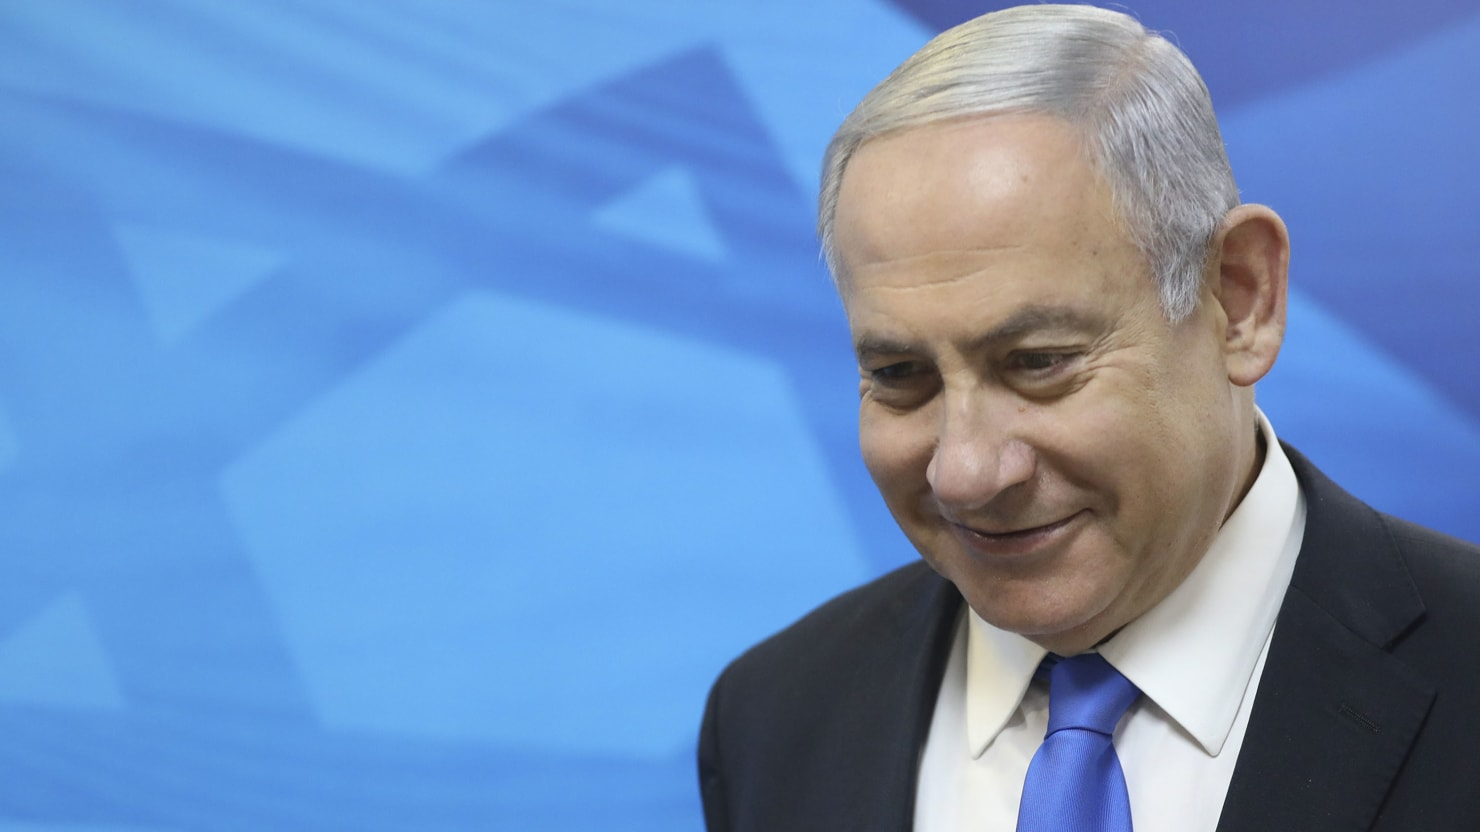 To Win Re-Election, Bibi Netanyahu Is Waging 'Wars' at Home and Abroad